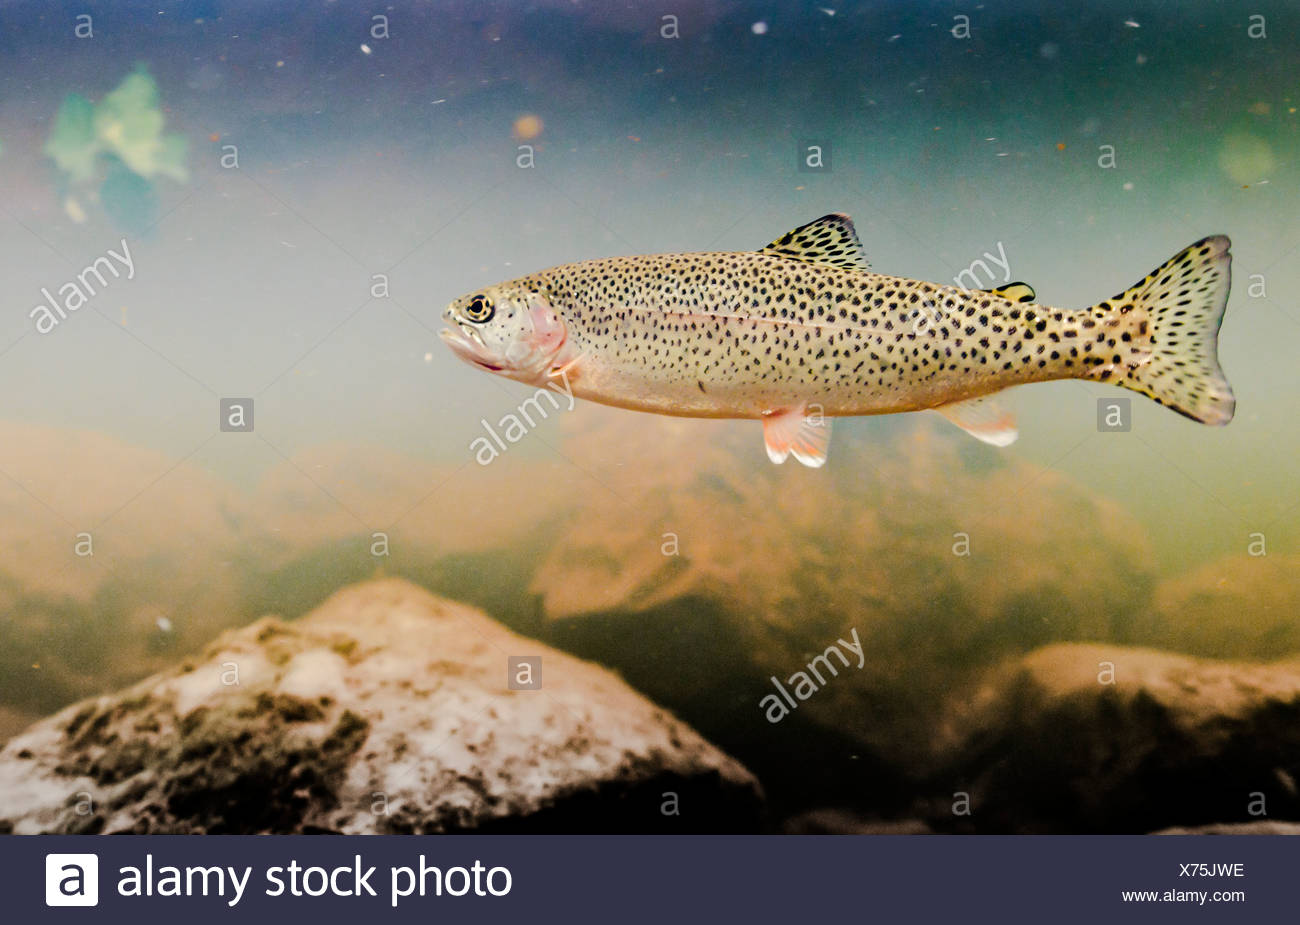 Underwater view of an adult coastal Cutthroat trout in the tannin stained water of 18-mile Creek, Copper River Delta, Alaska Stock Photo